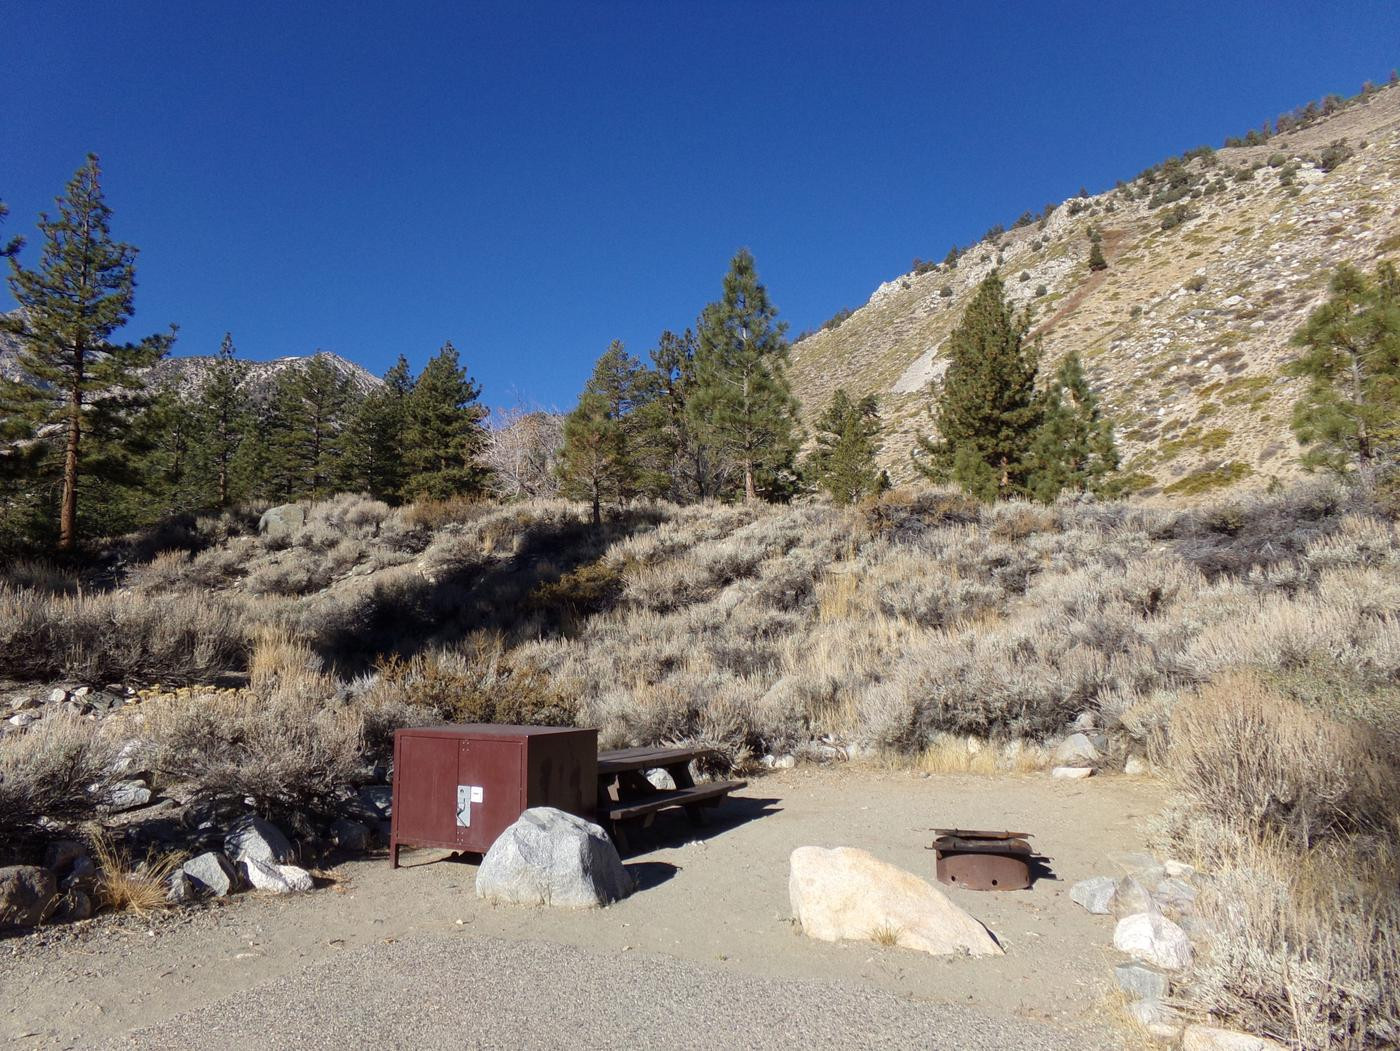 Upper Sage Flat Campground site #05 featuring picnic table, food storage, and fire pit with mountain views.